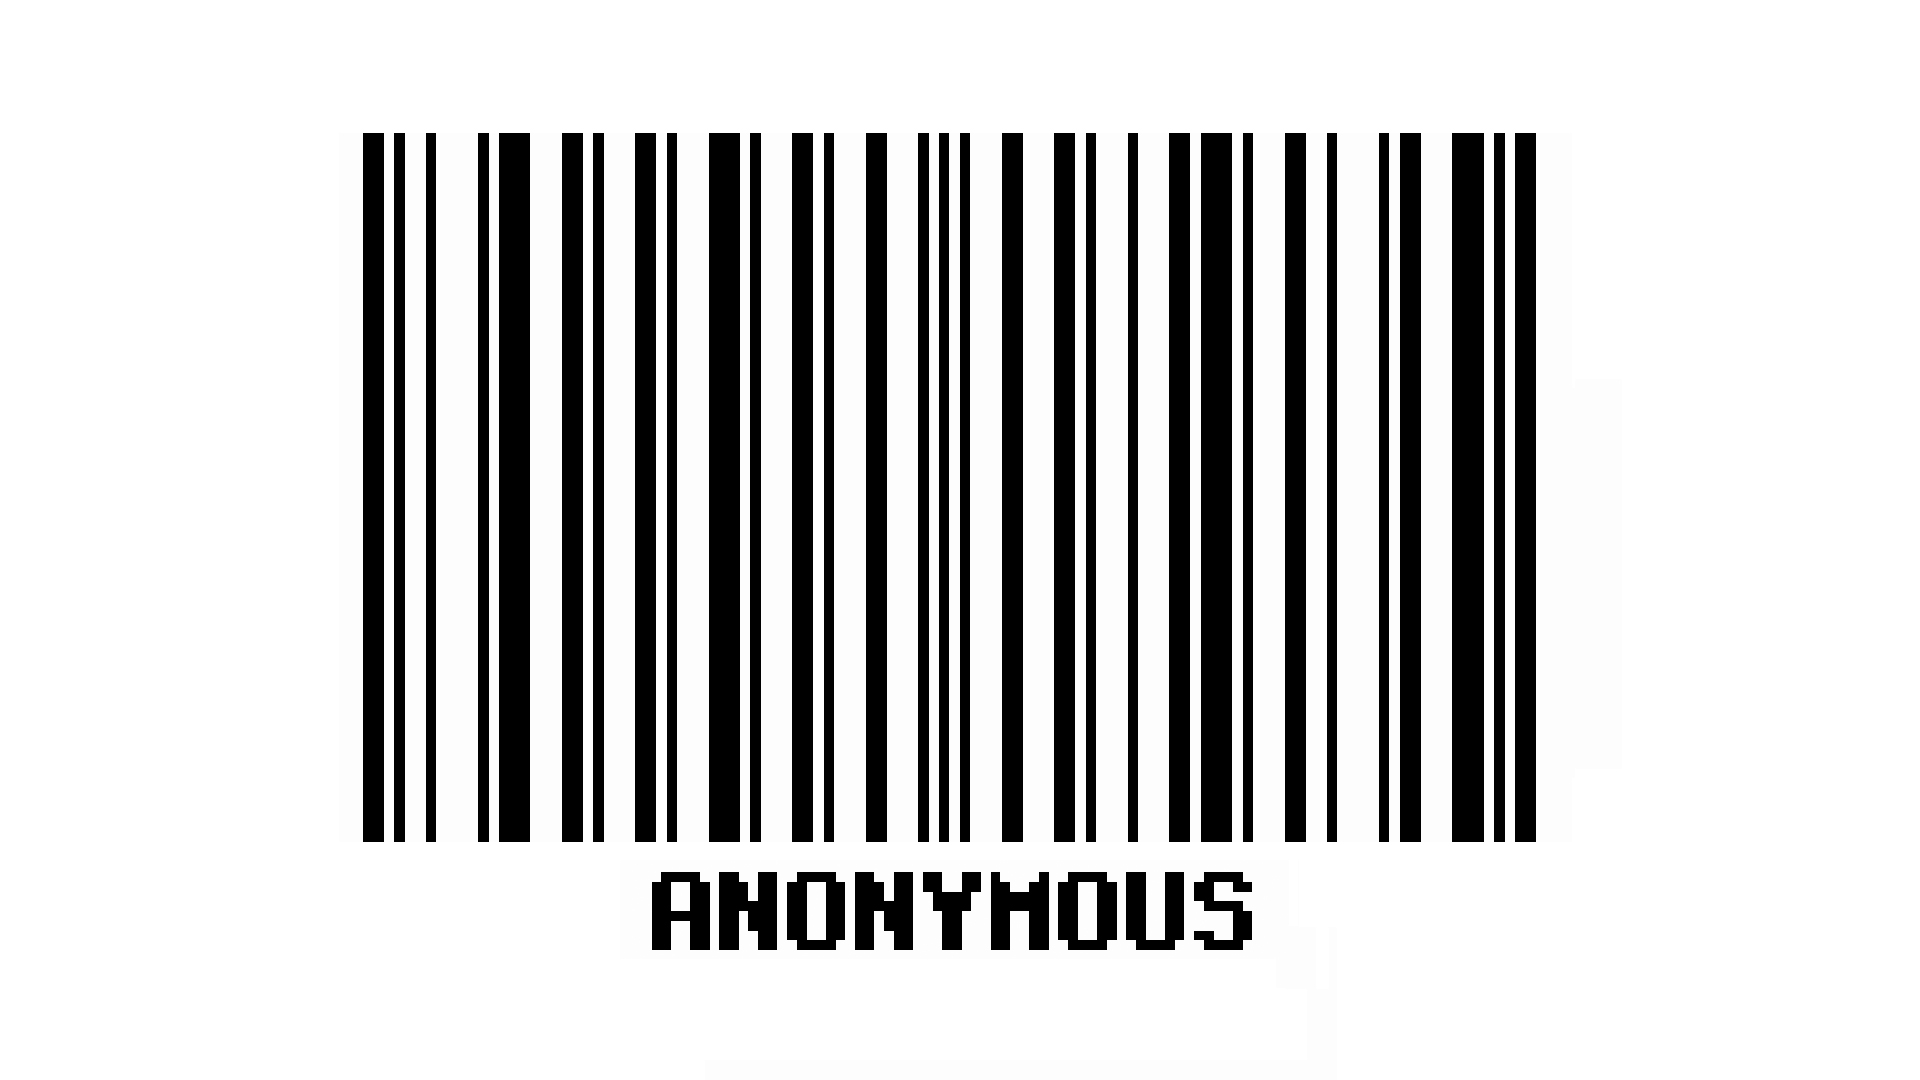 Fine Barcode Photos and Pictures, Barcode 100% Quality HD Wallpapers